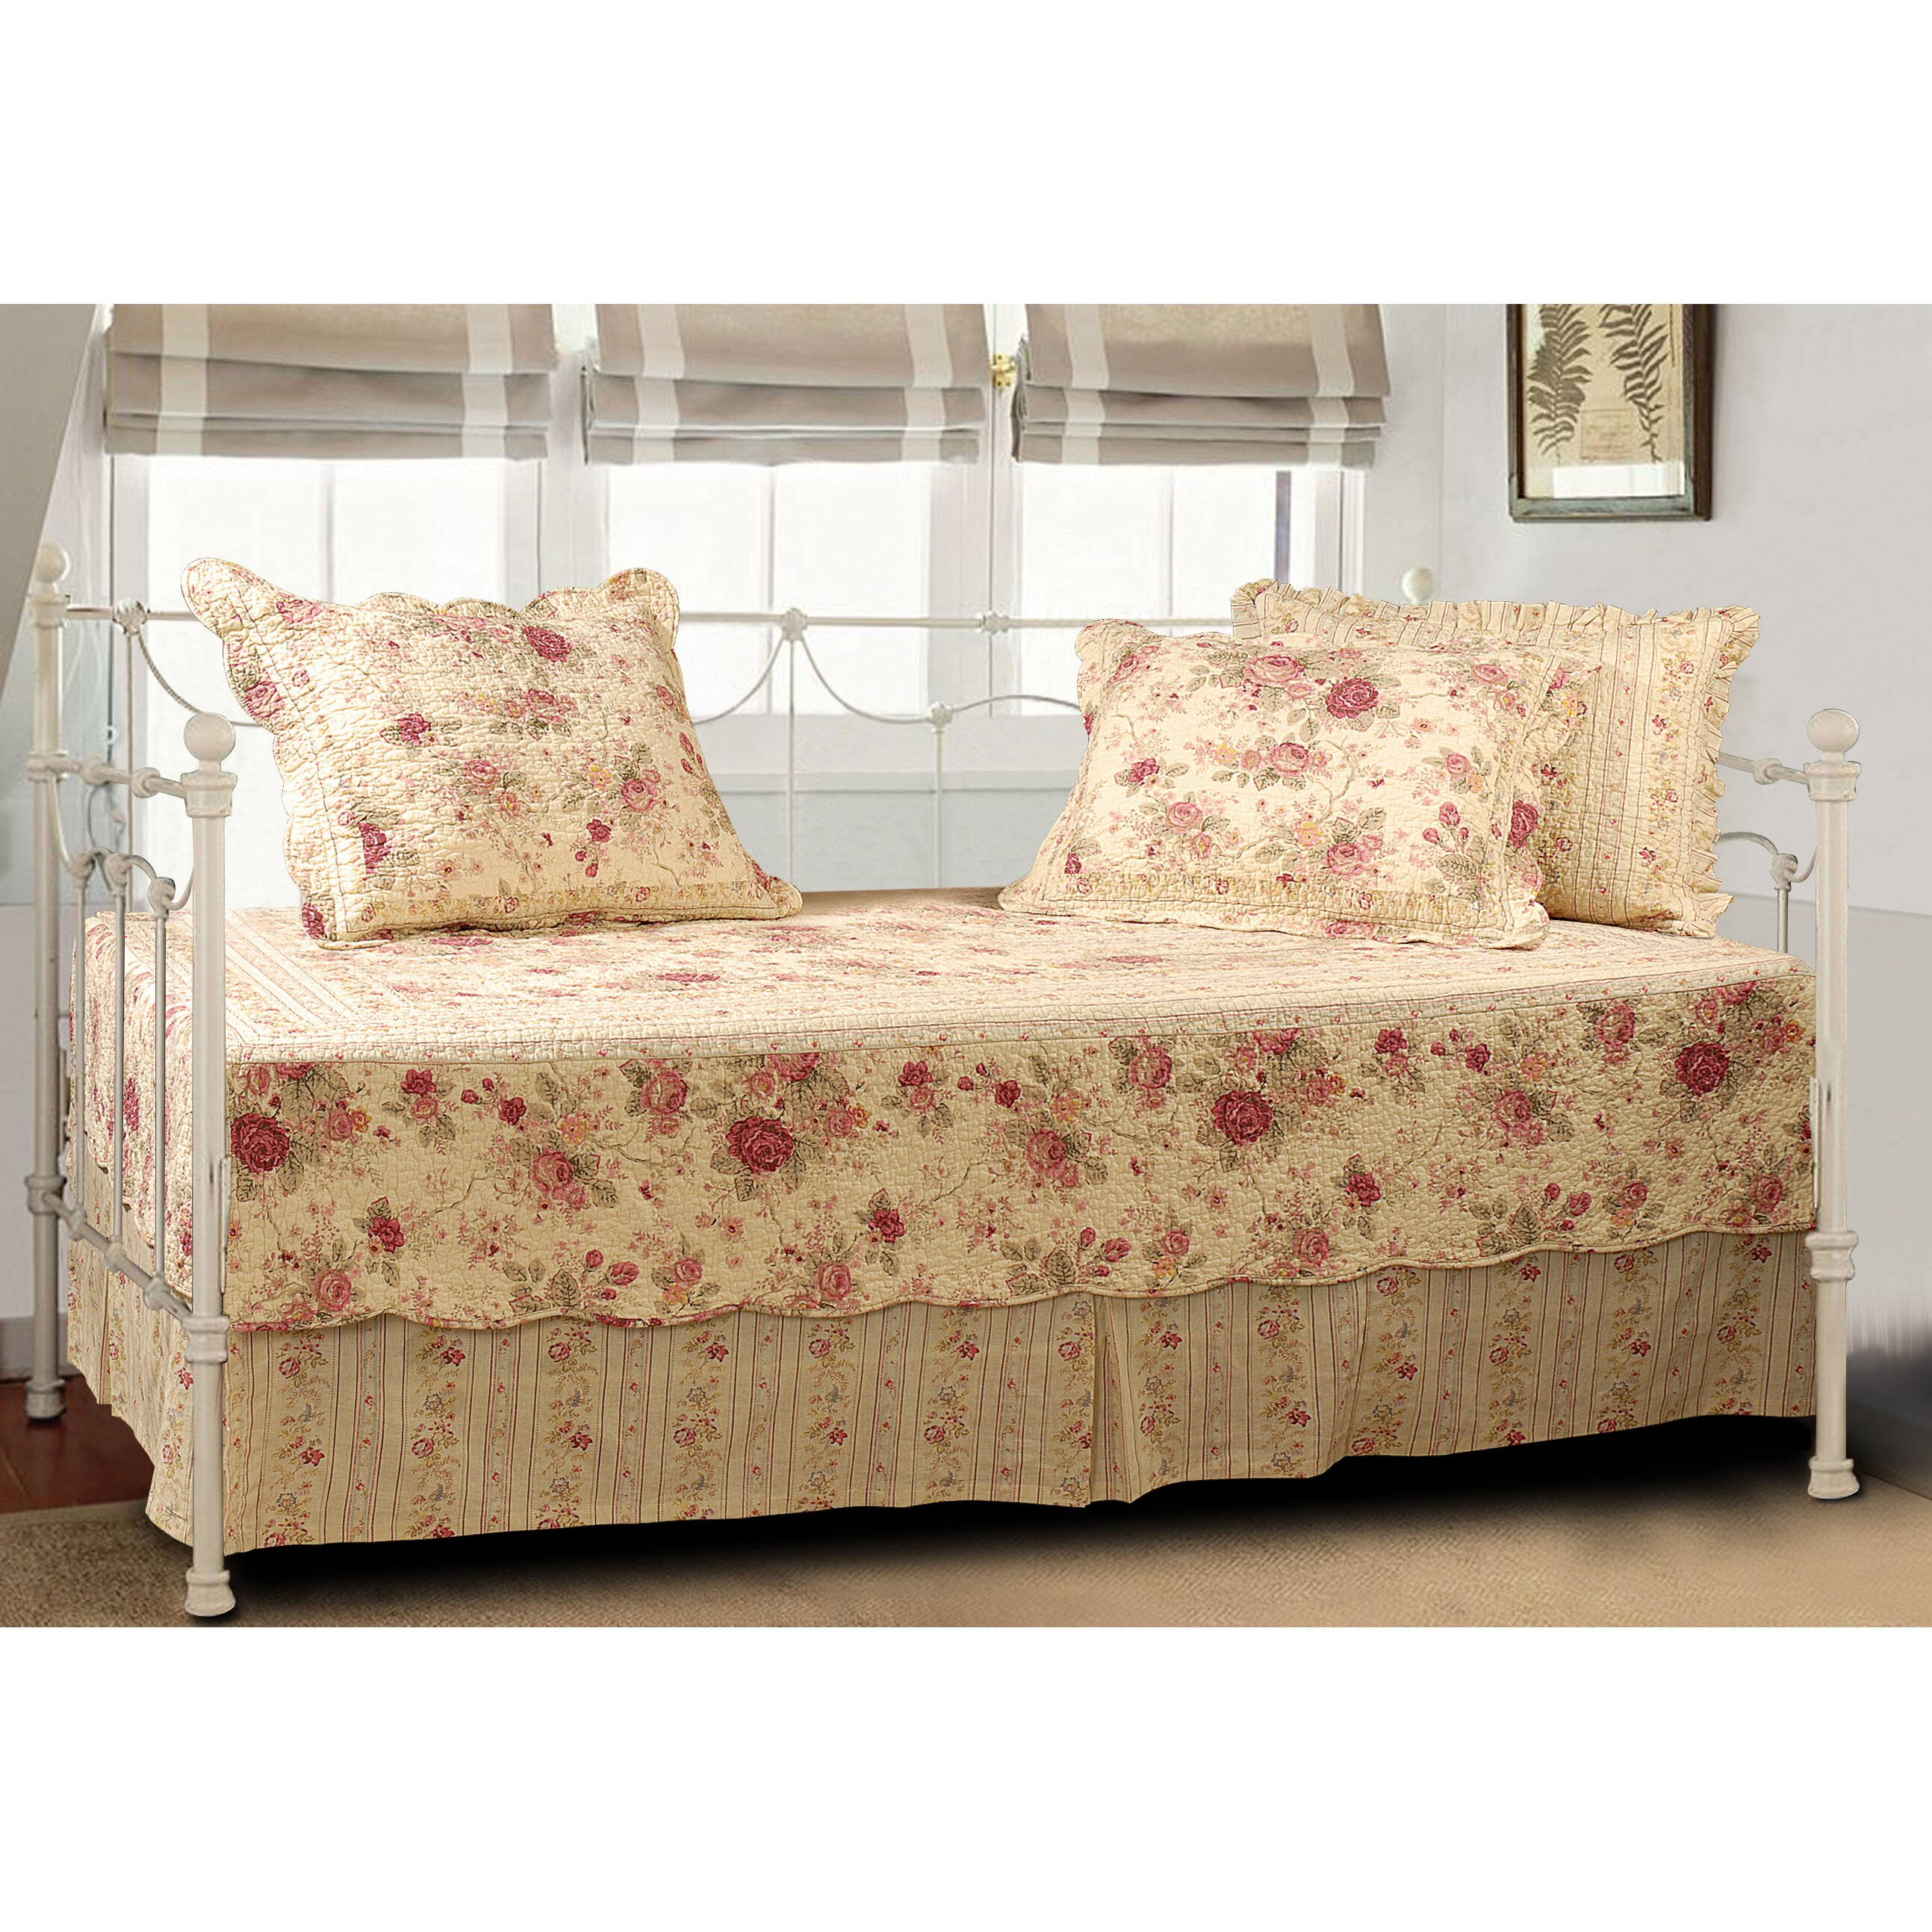 Greenland Home Fashions Antique Rose 5 Piece Reversible